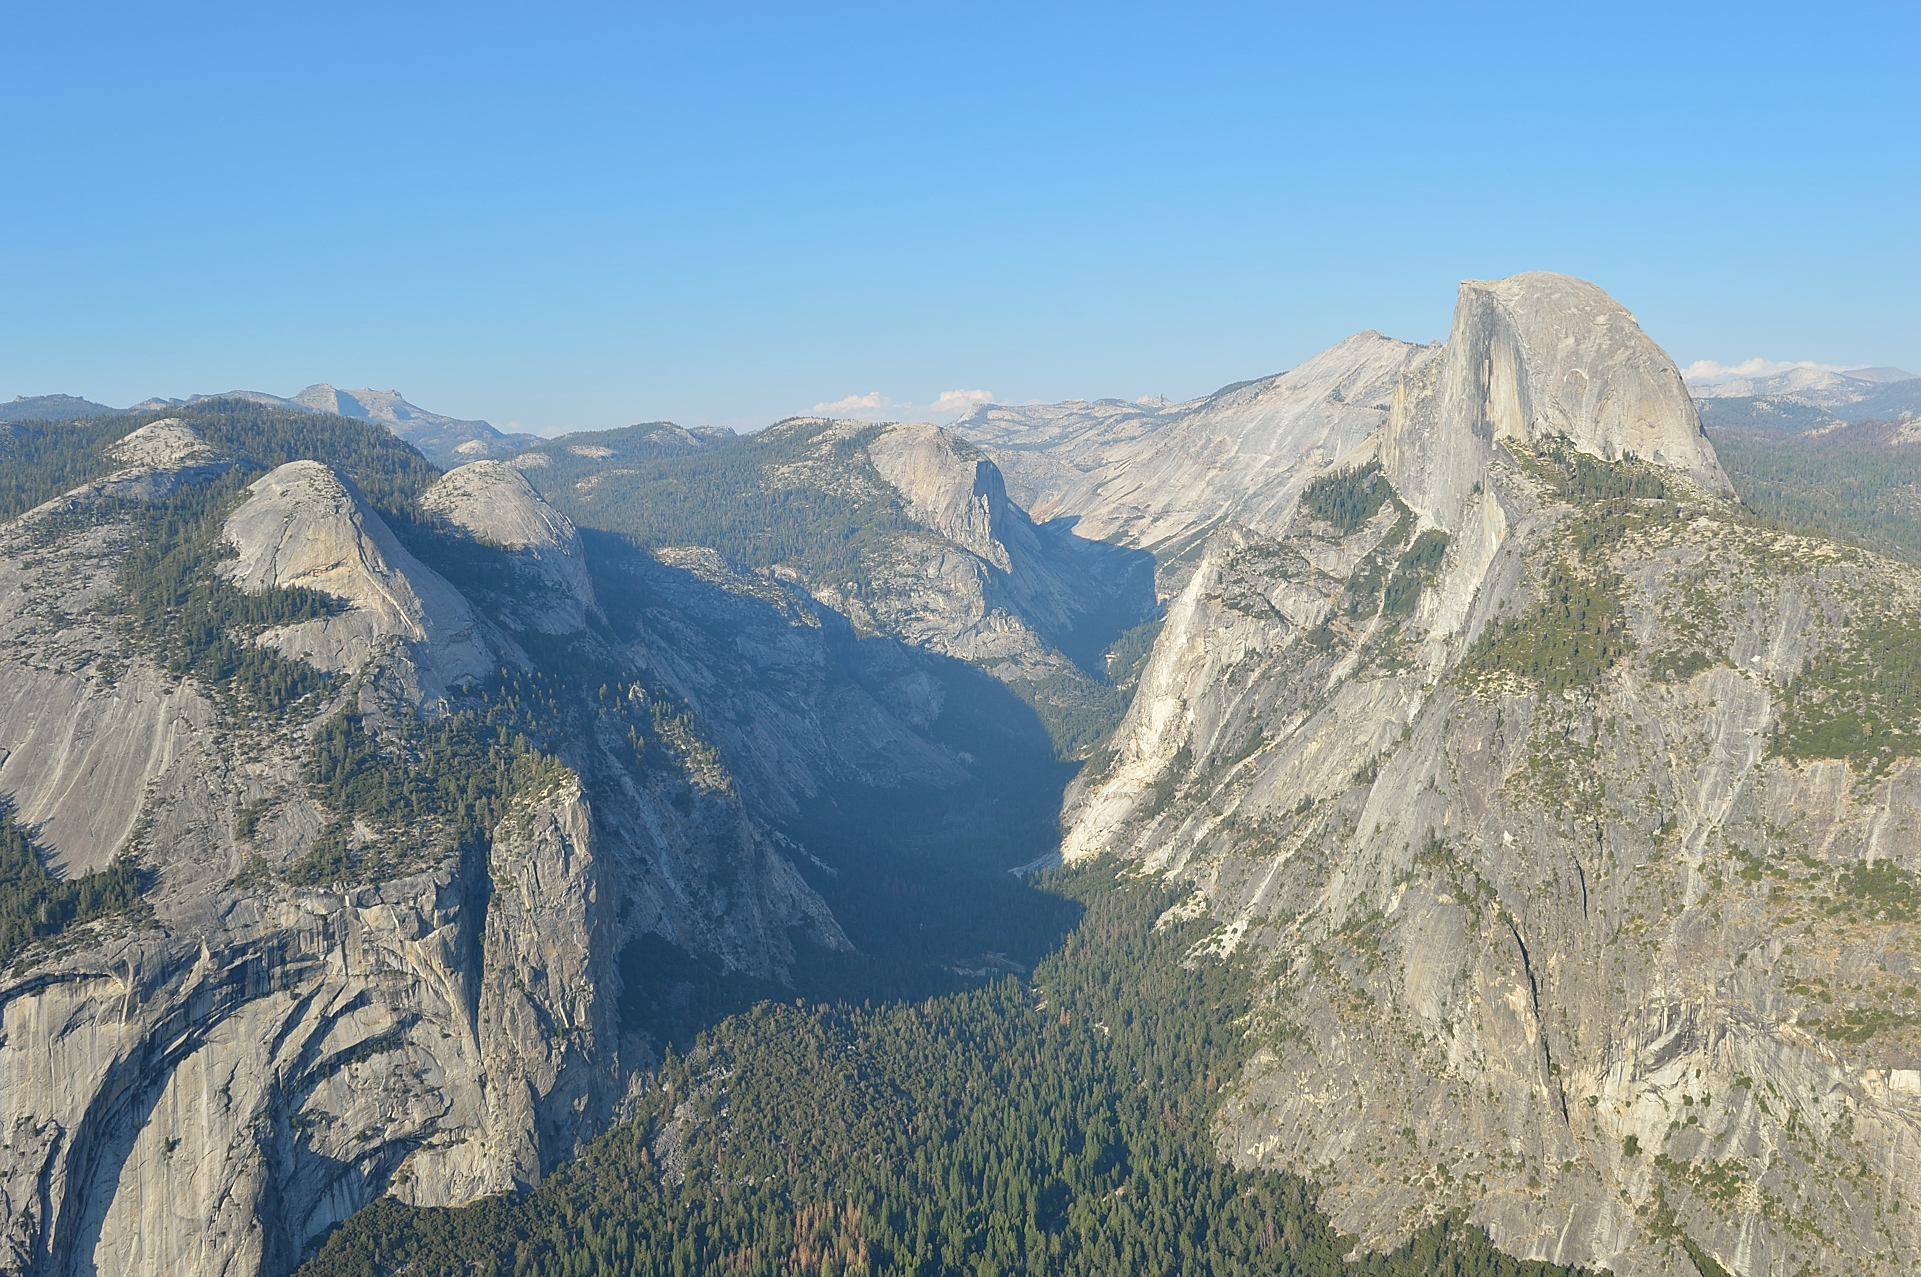 View from Glacier Point at Half Dome and Yosemite Valley